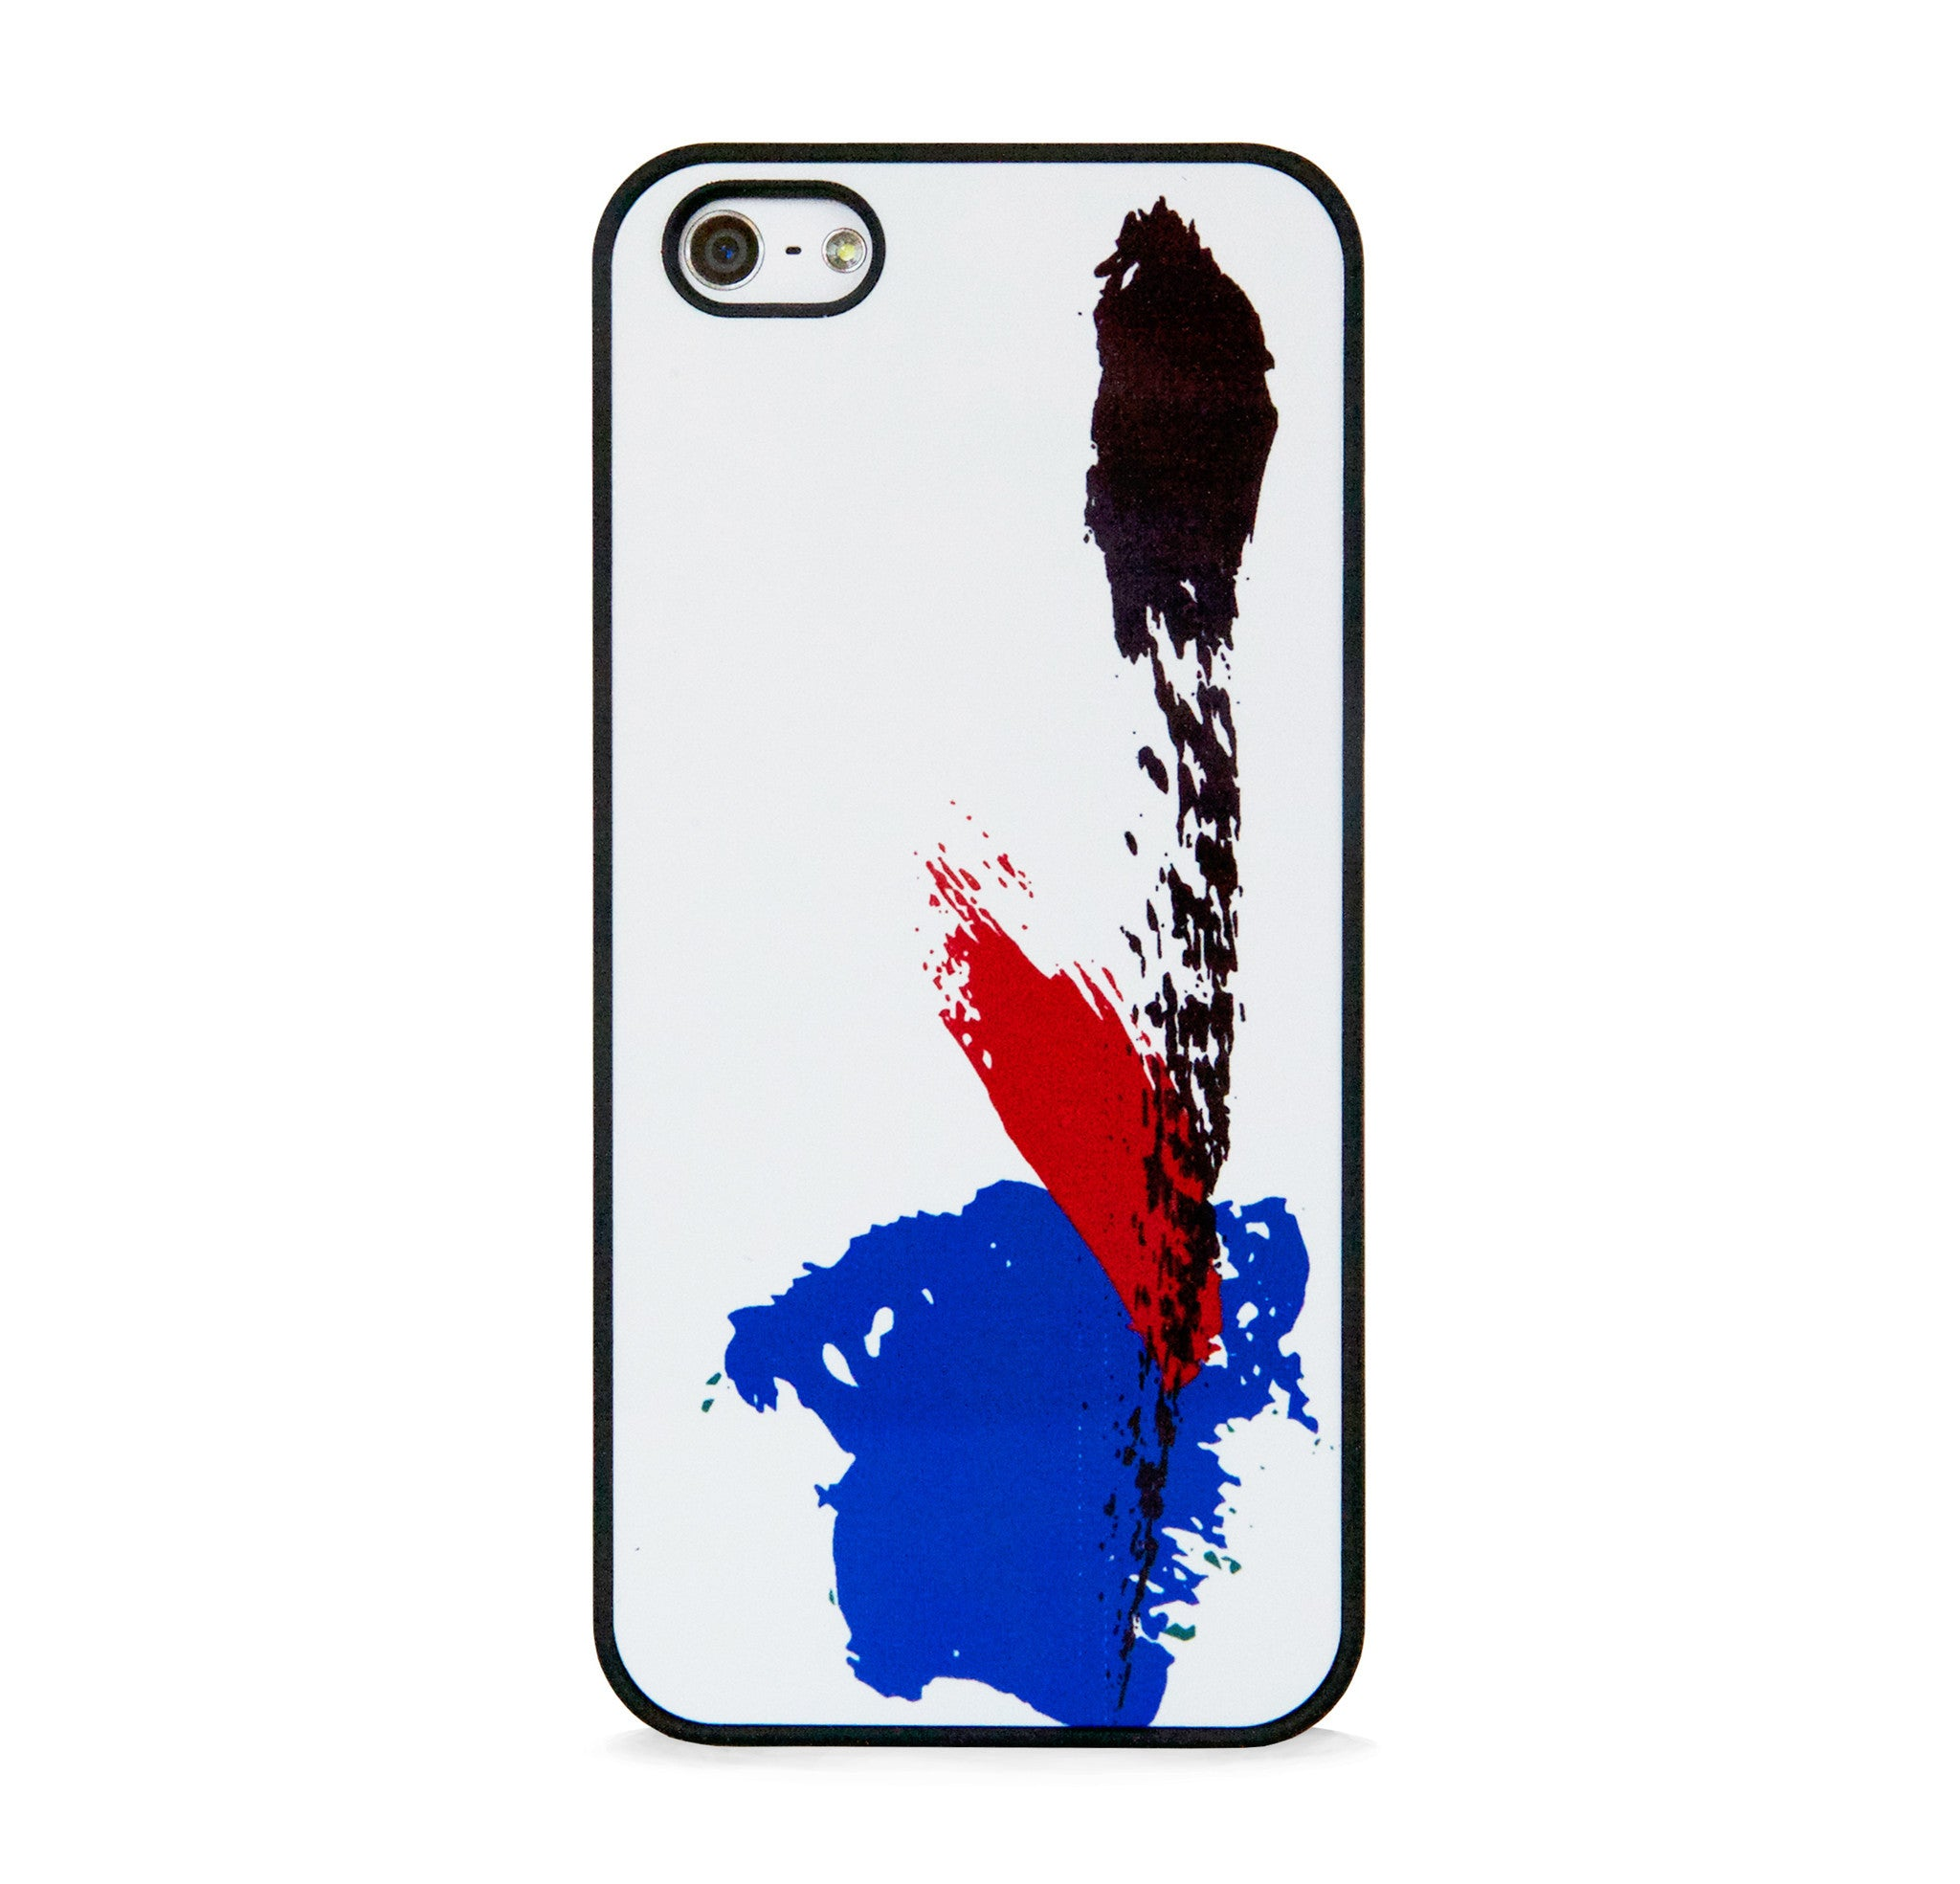 STYLISH CALLIGRAPHY MULTI BLUE FOR IPHONE 5/5S, IPHONE SE